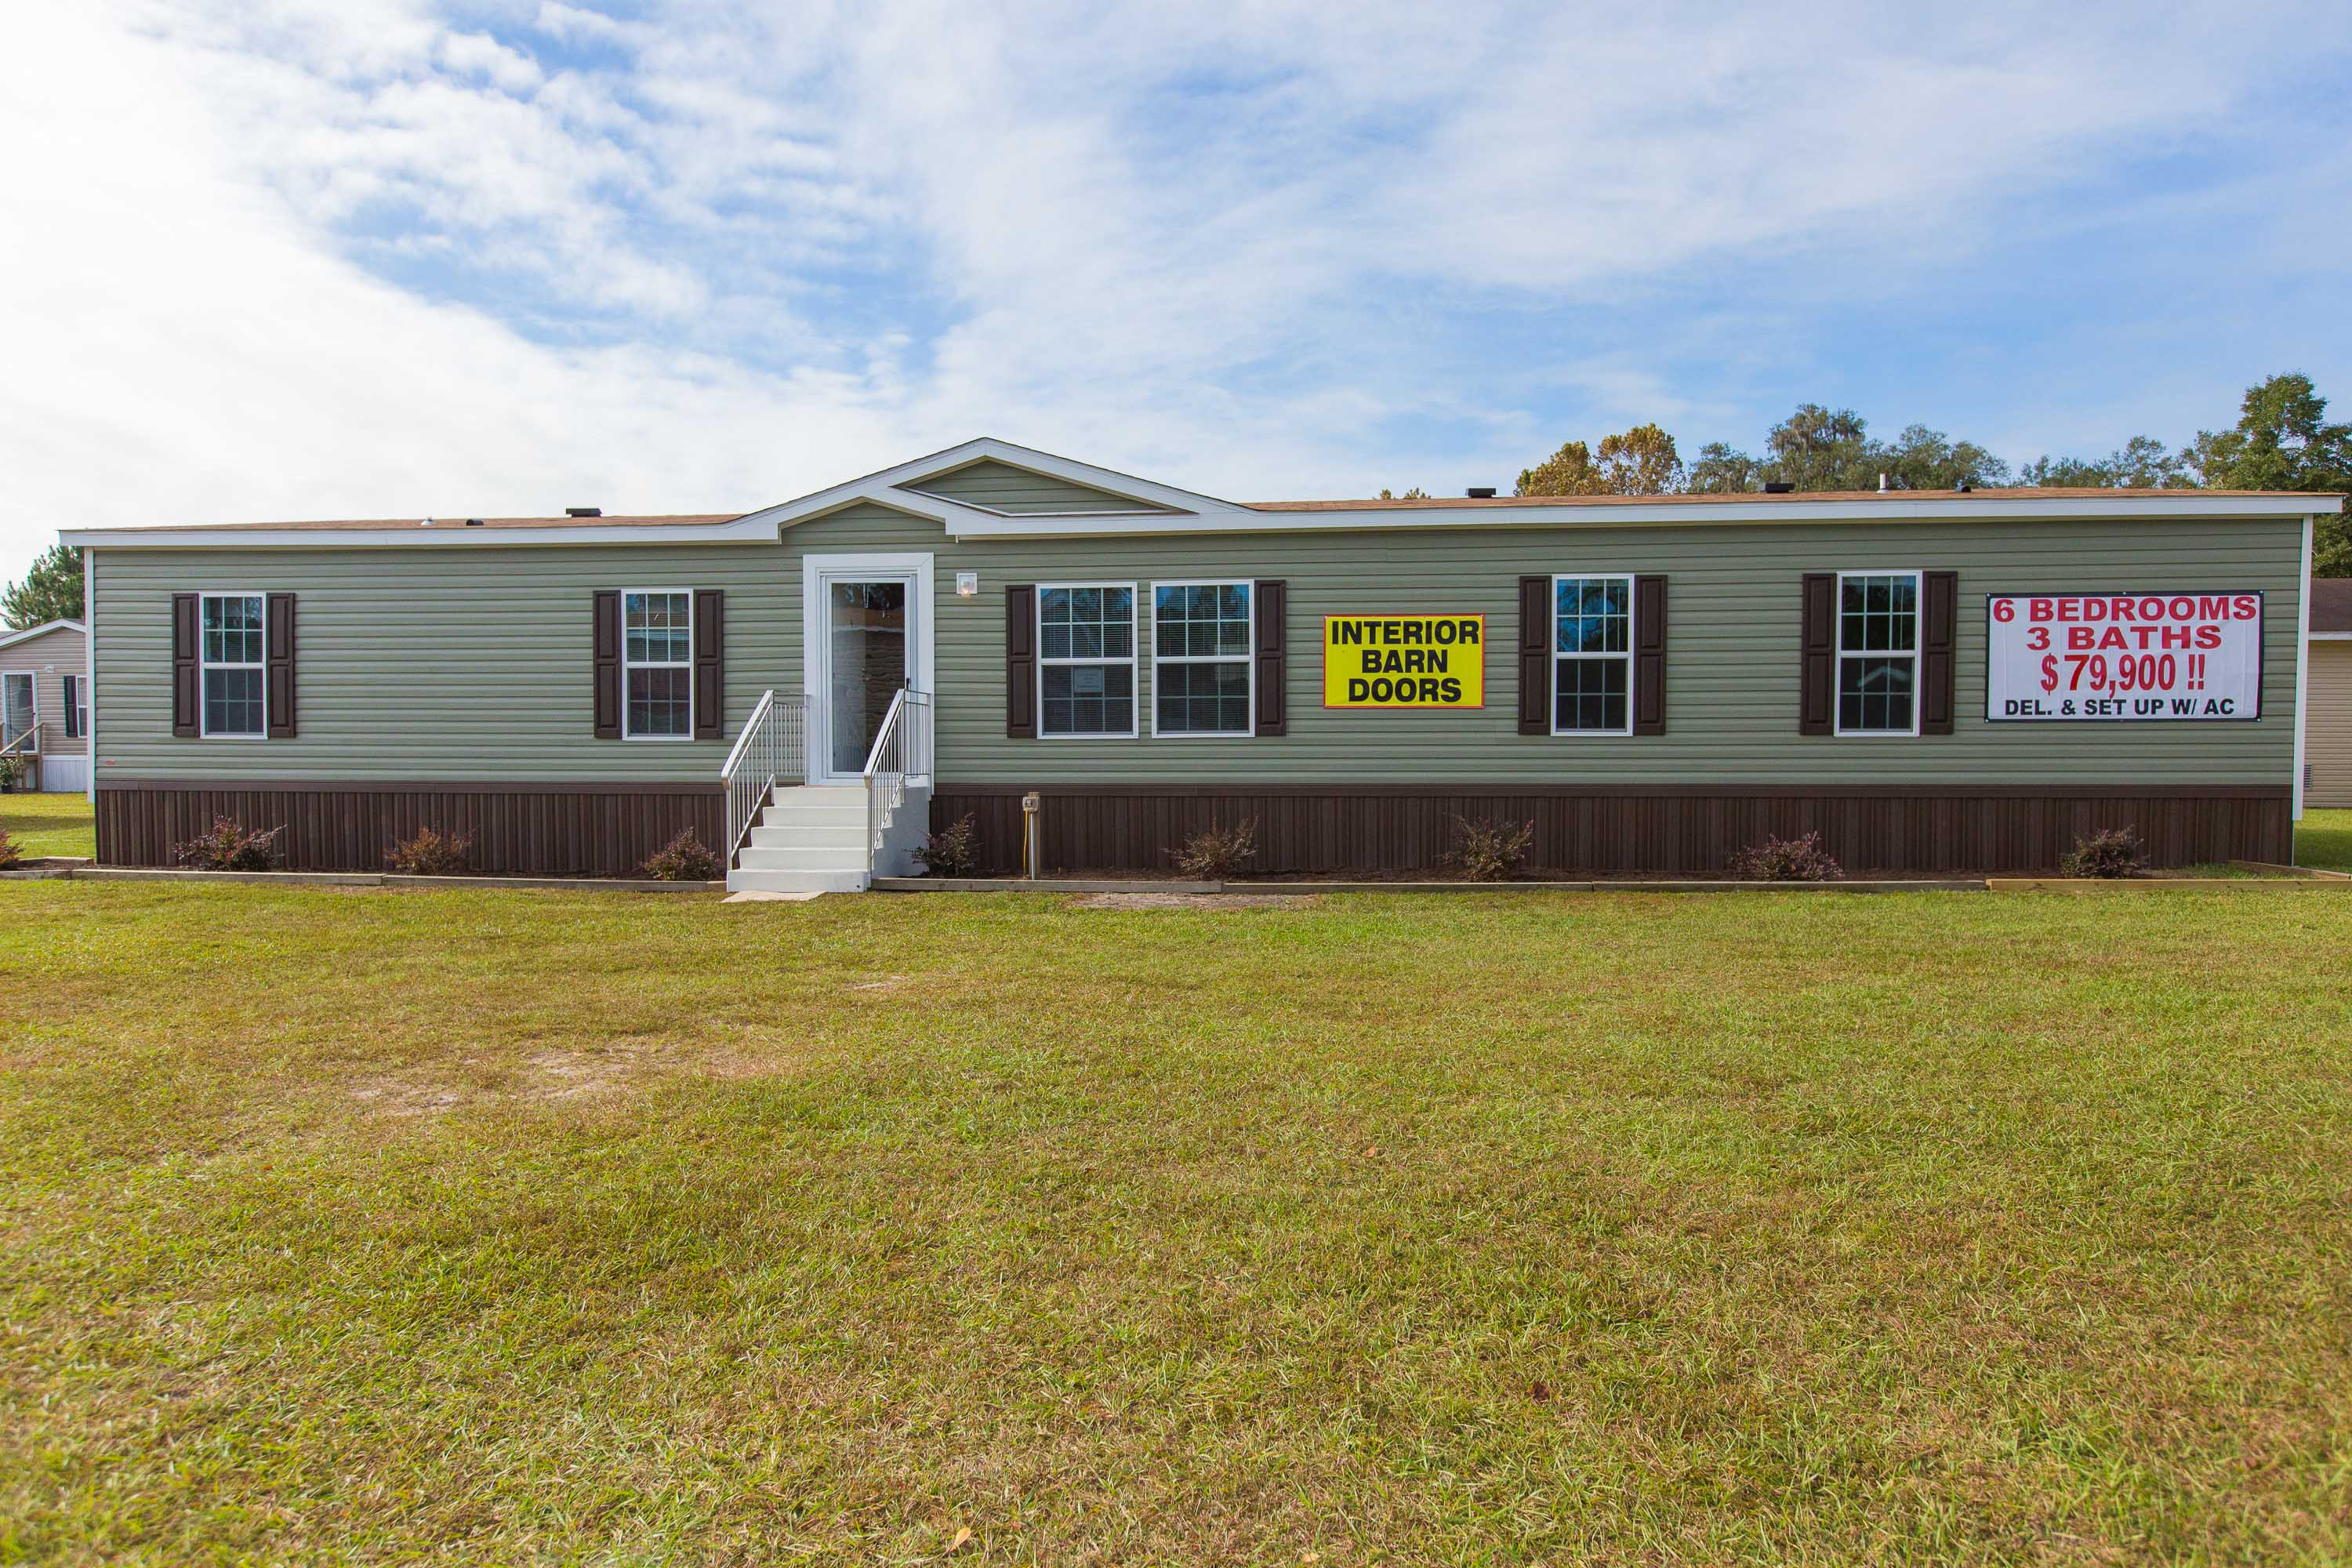 Wayne Frier Mobile Homes | Wayne Frier Tallahassee | Mobile Homes Chiefland Fl